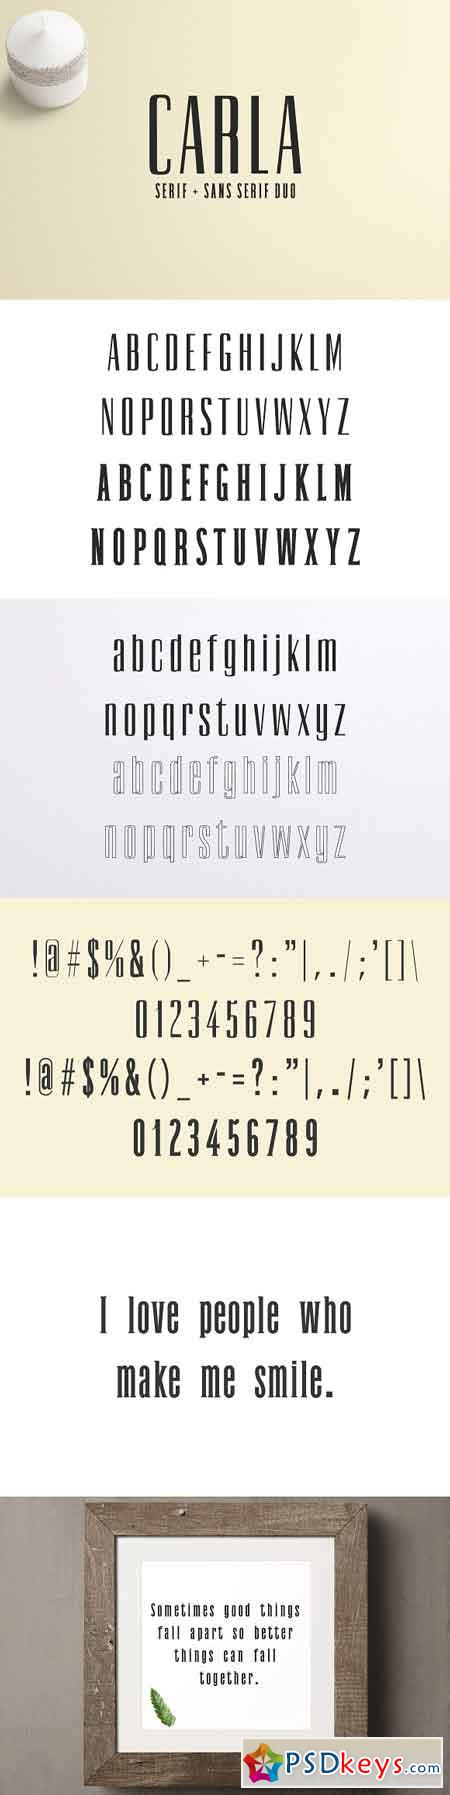 Carla Duo 8 Font Family Pack 2123066